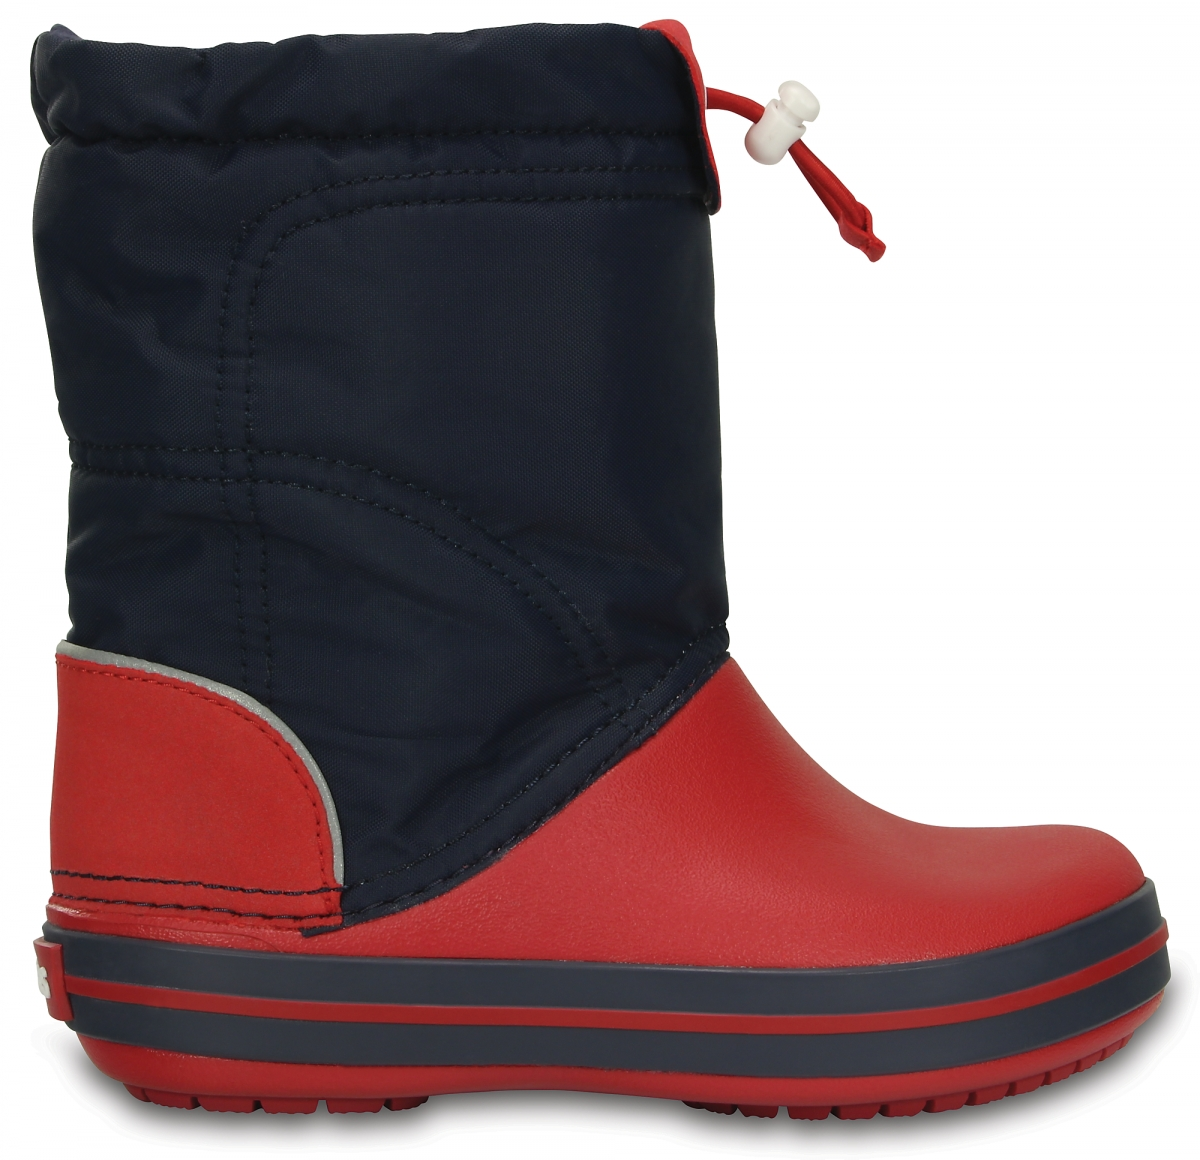 Crocs Crocband LodgePoint Boot Kids - Navy/Red, J1 (32-33)